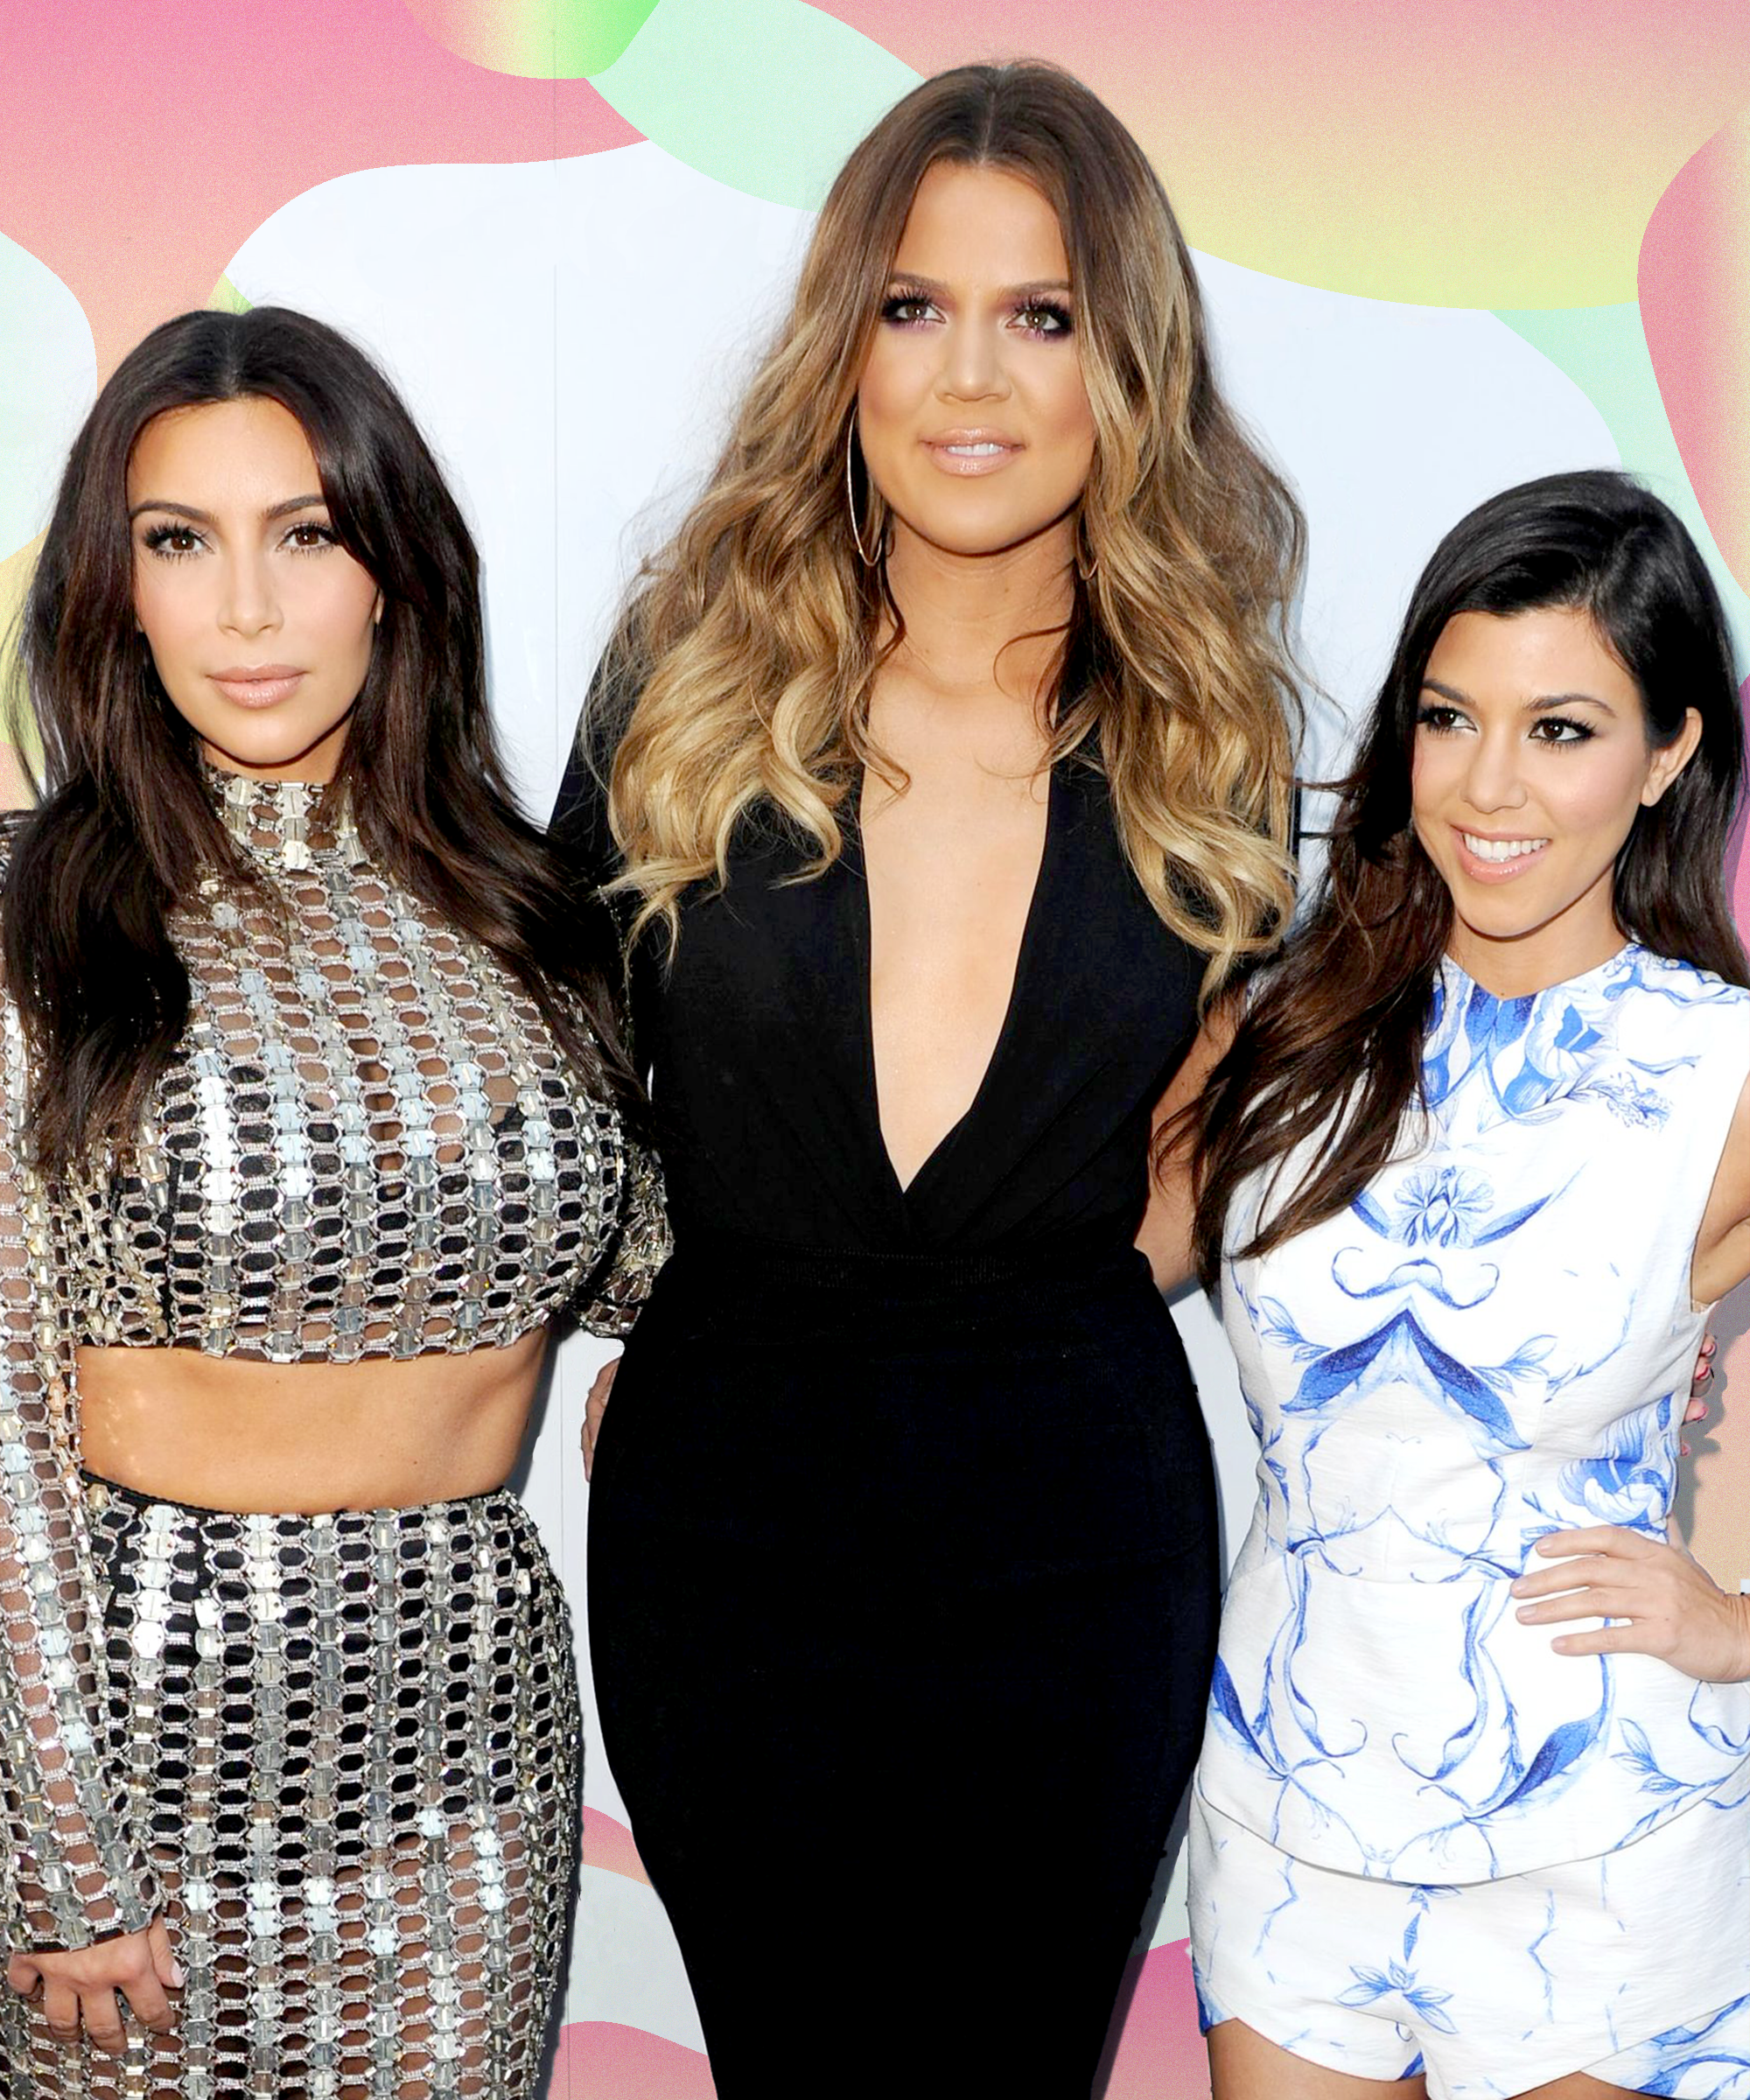 Real Talk: How Tall Are The Kardashians?